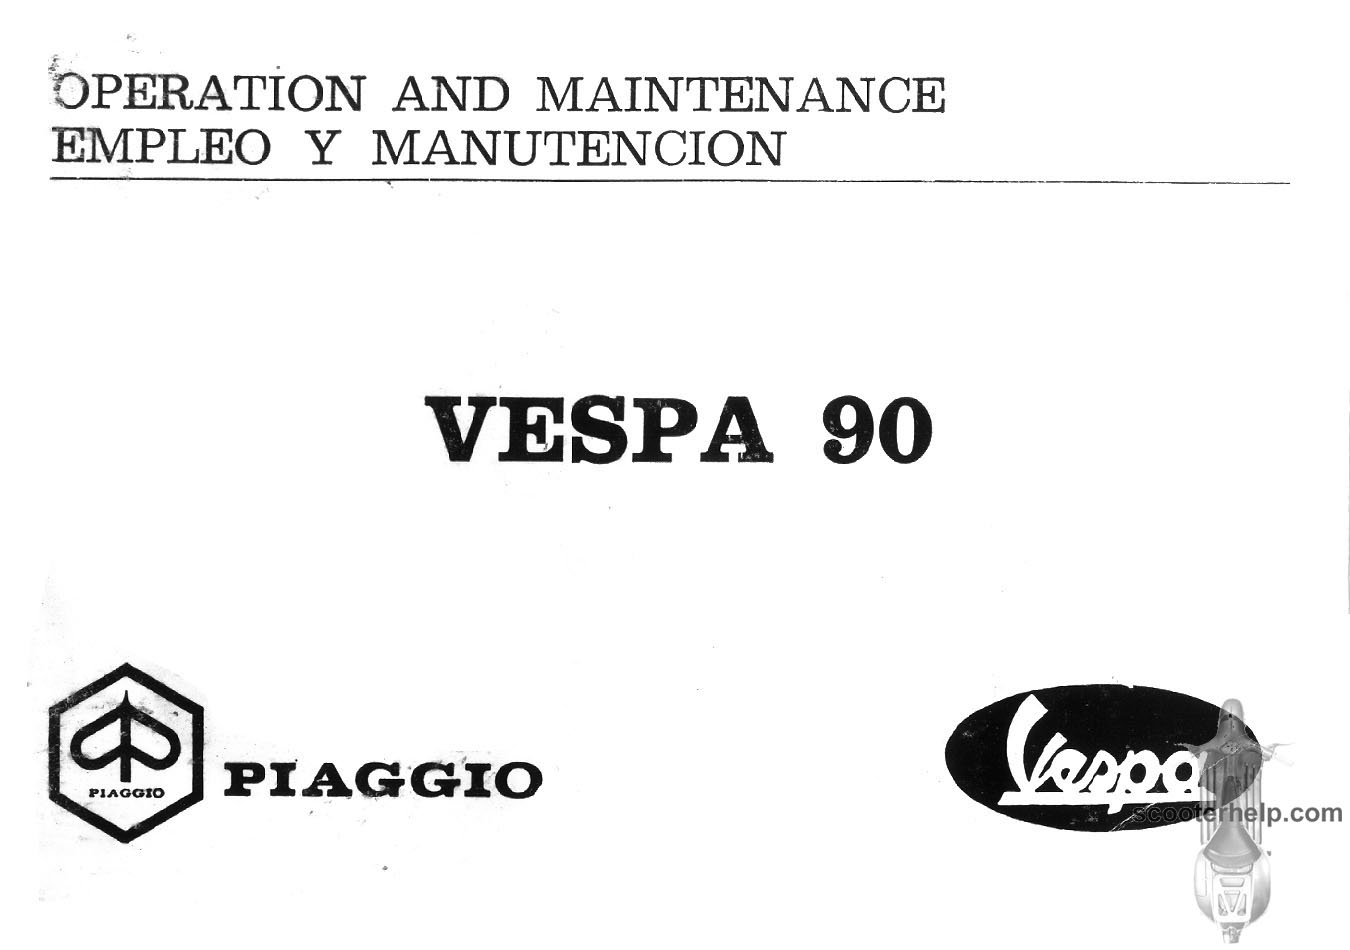 Vespa V90 Wiring Diagram Trusted Vna 90 Owners Manual 150cc Scooter